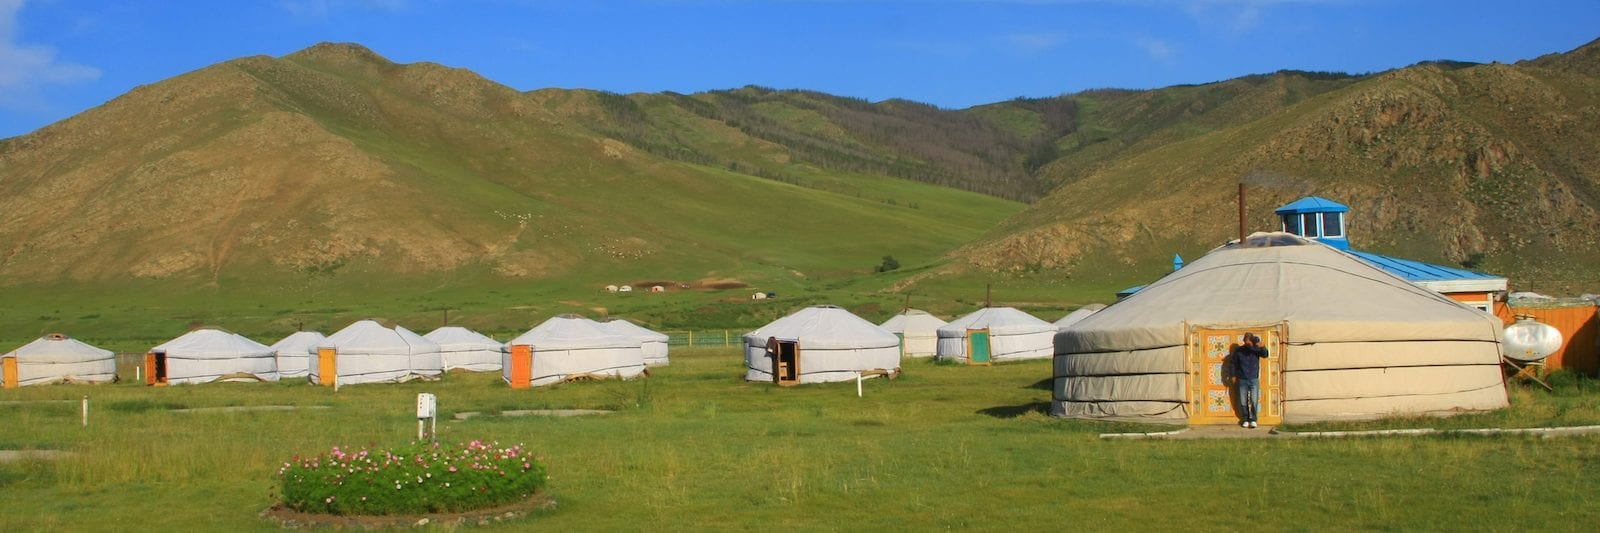 Ger camp in Mongolia